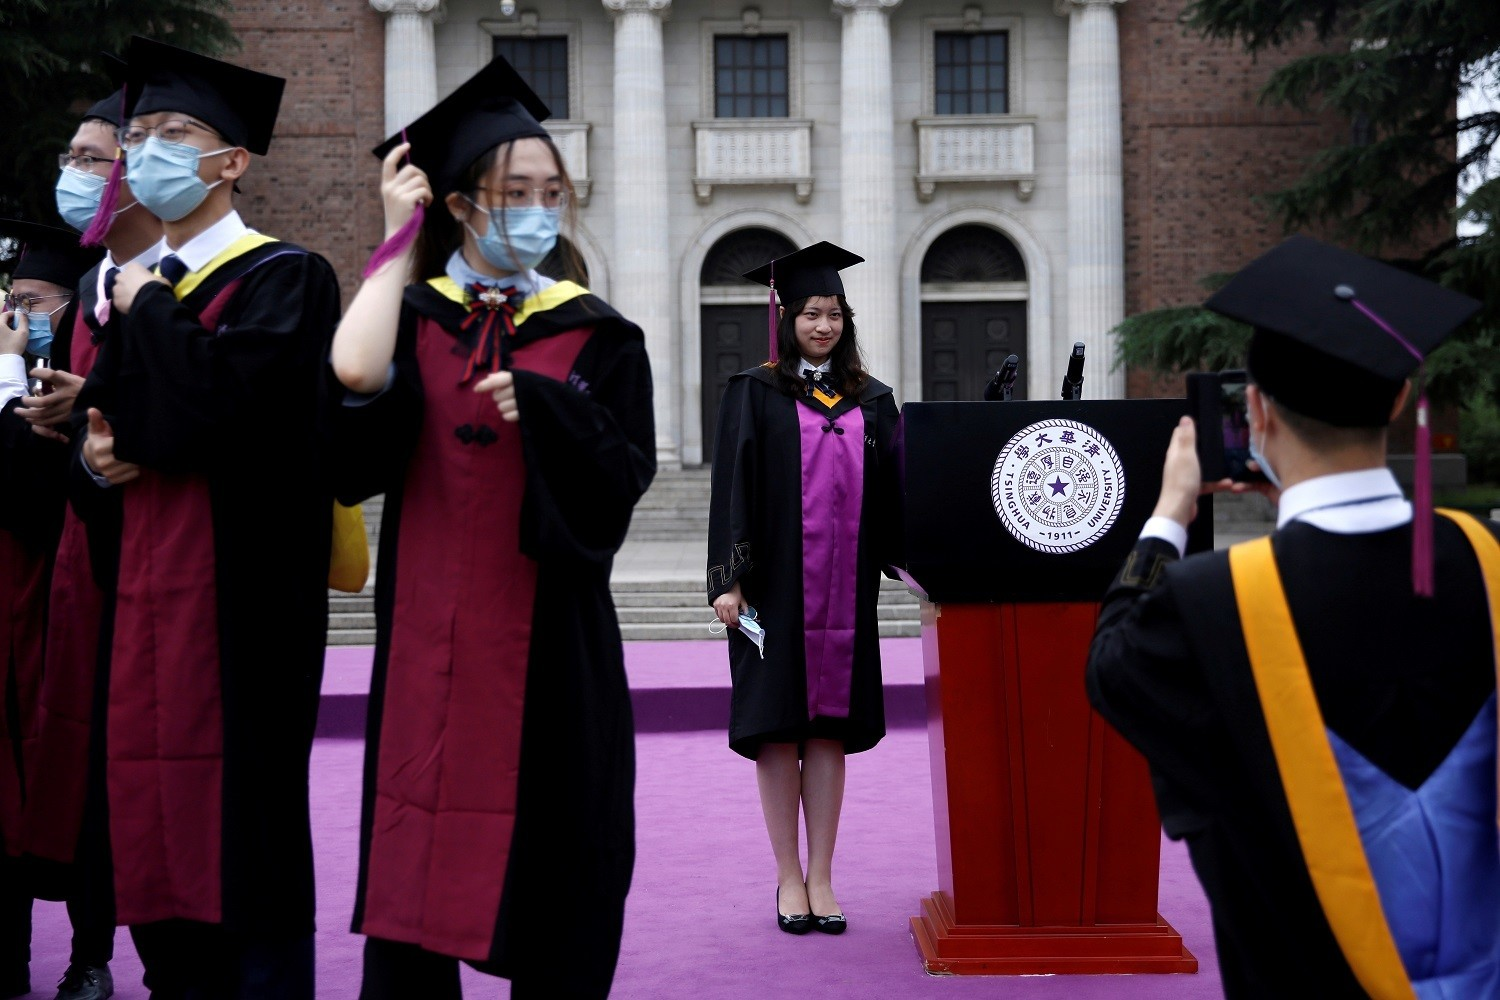 Undergraduate students pose for photos as they attend a graduation ceremony in Tsinghua University, following the outbreak of the coronavirus disease (COVID-19), in Beijing, China June 23, 2020. REUTERS/Tingshu Wang     TPX IMAGES OF THE DAY - RC2SEH9SN936